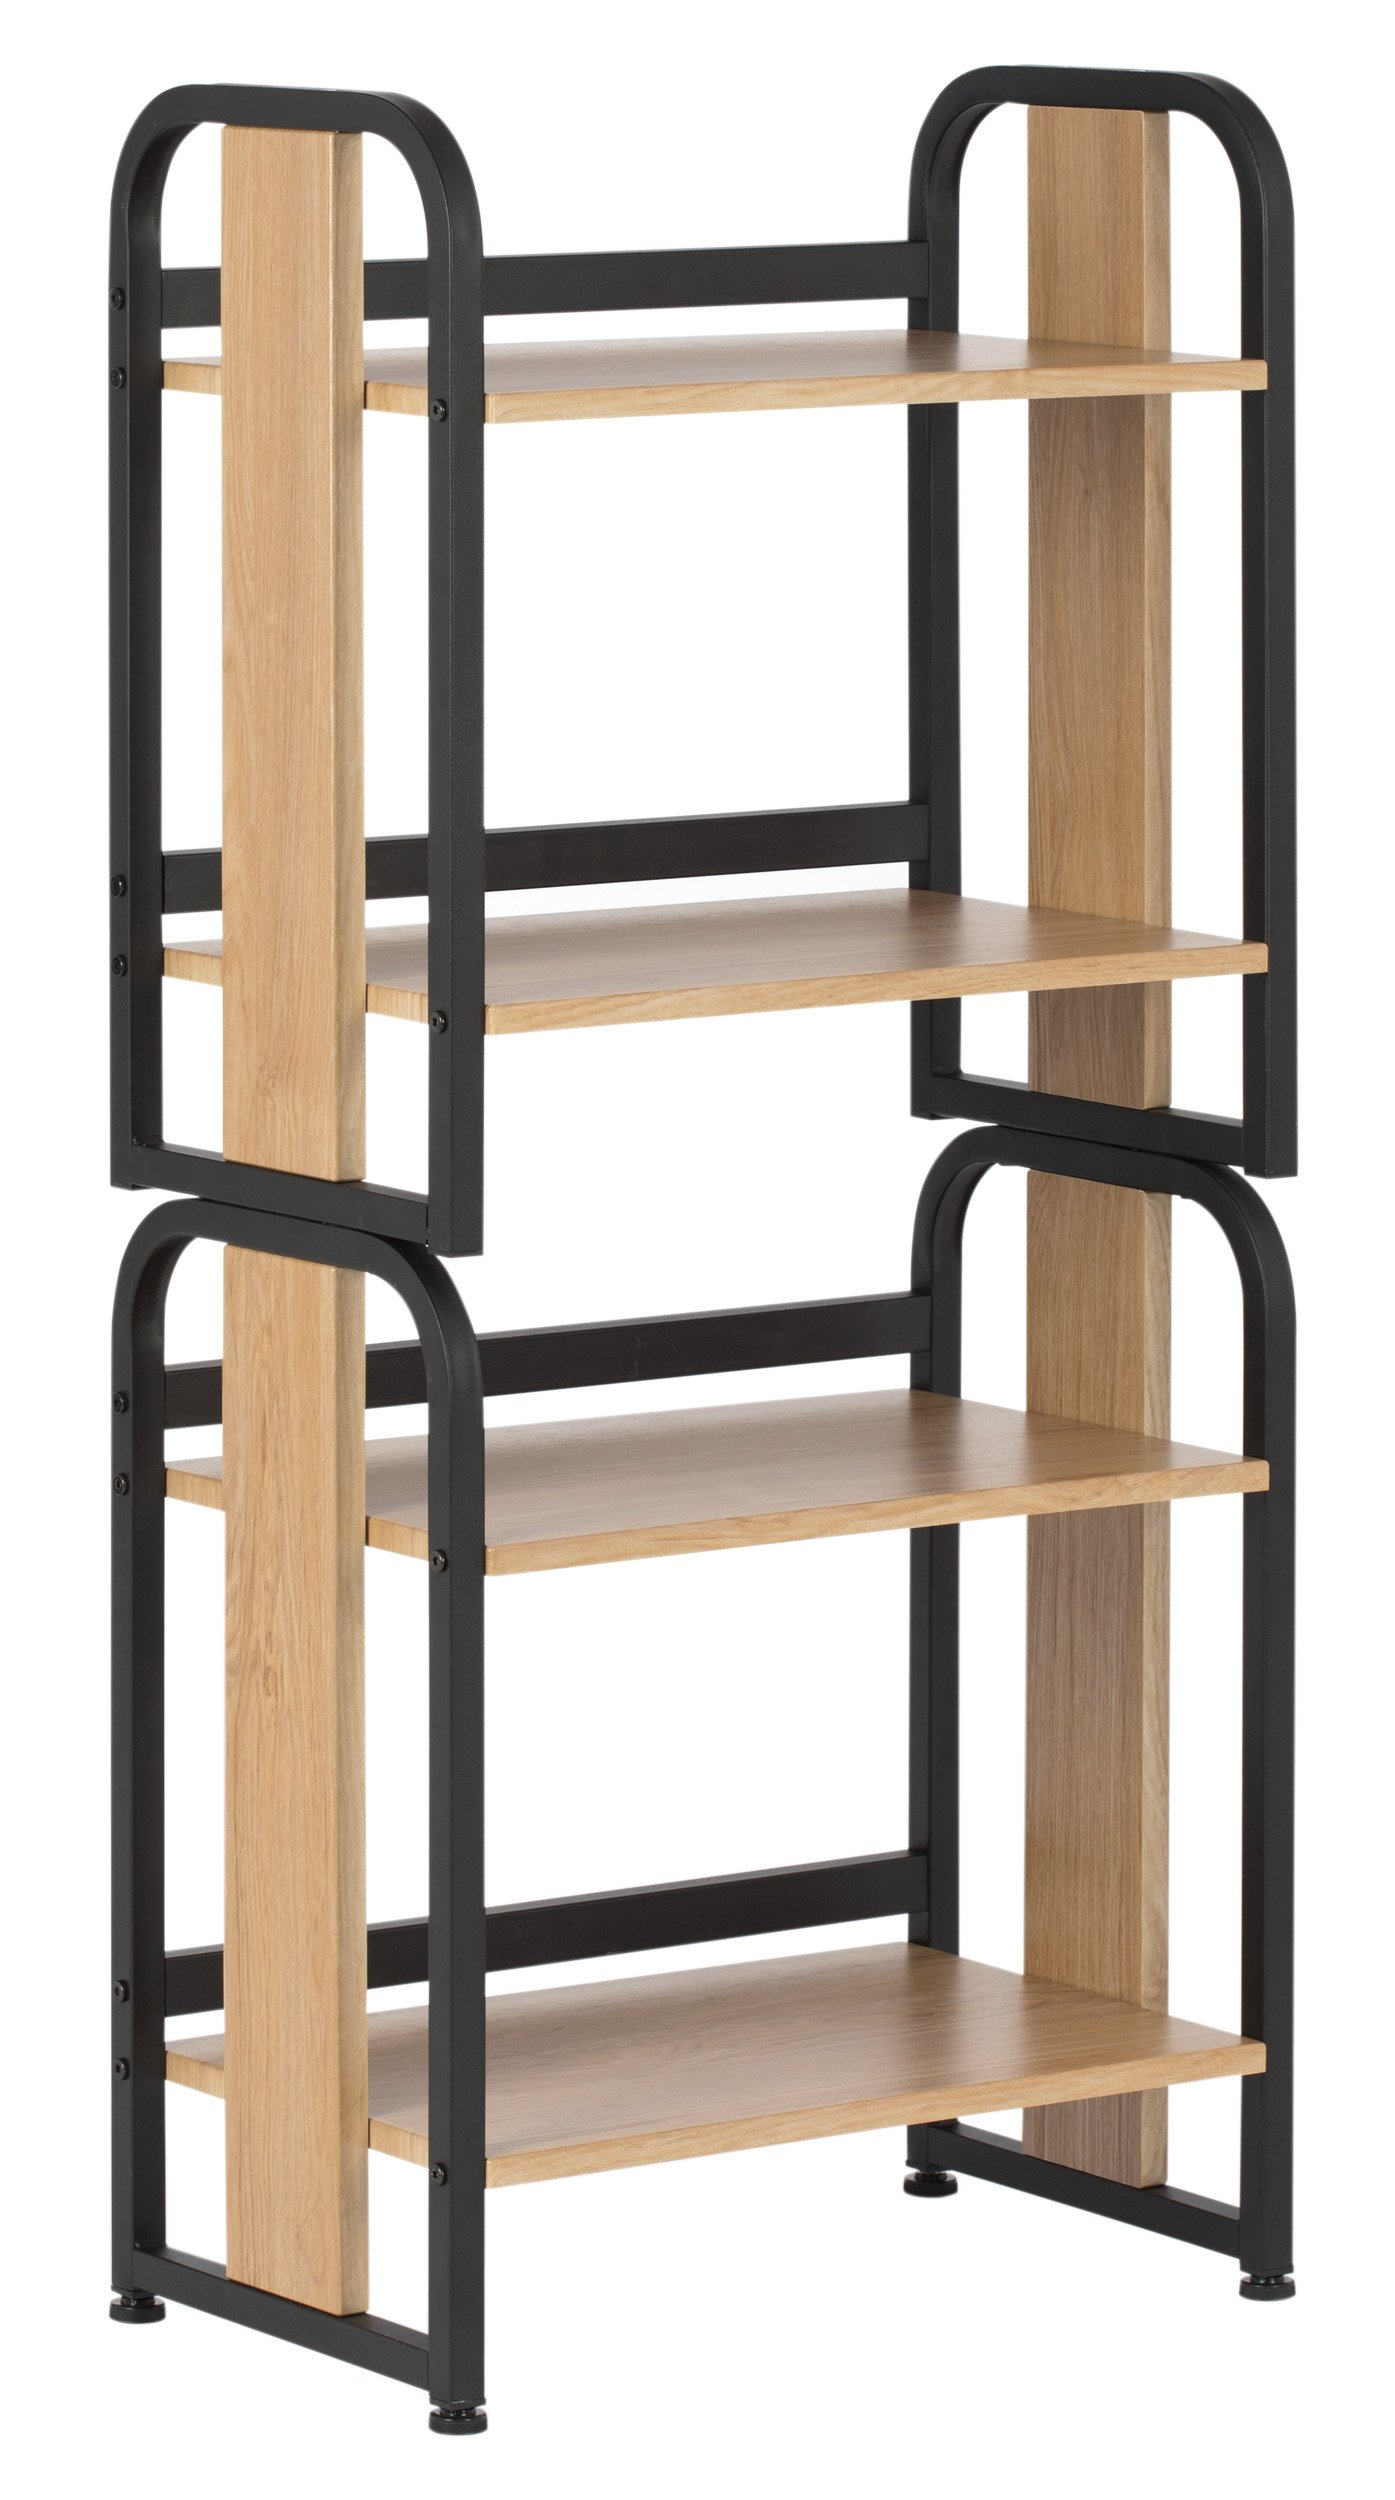 Calico Designs 51249 Modern Ashwood Stackable Bookshelf, Graphite Ashwood by Calico Designs (Image #1)